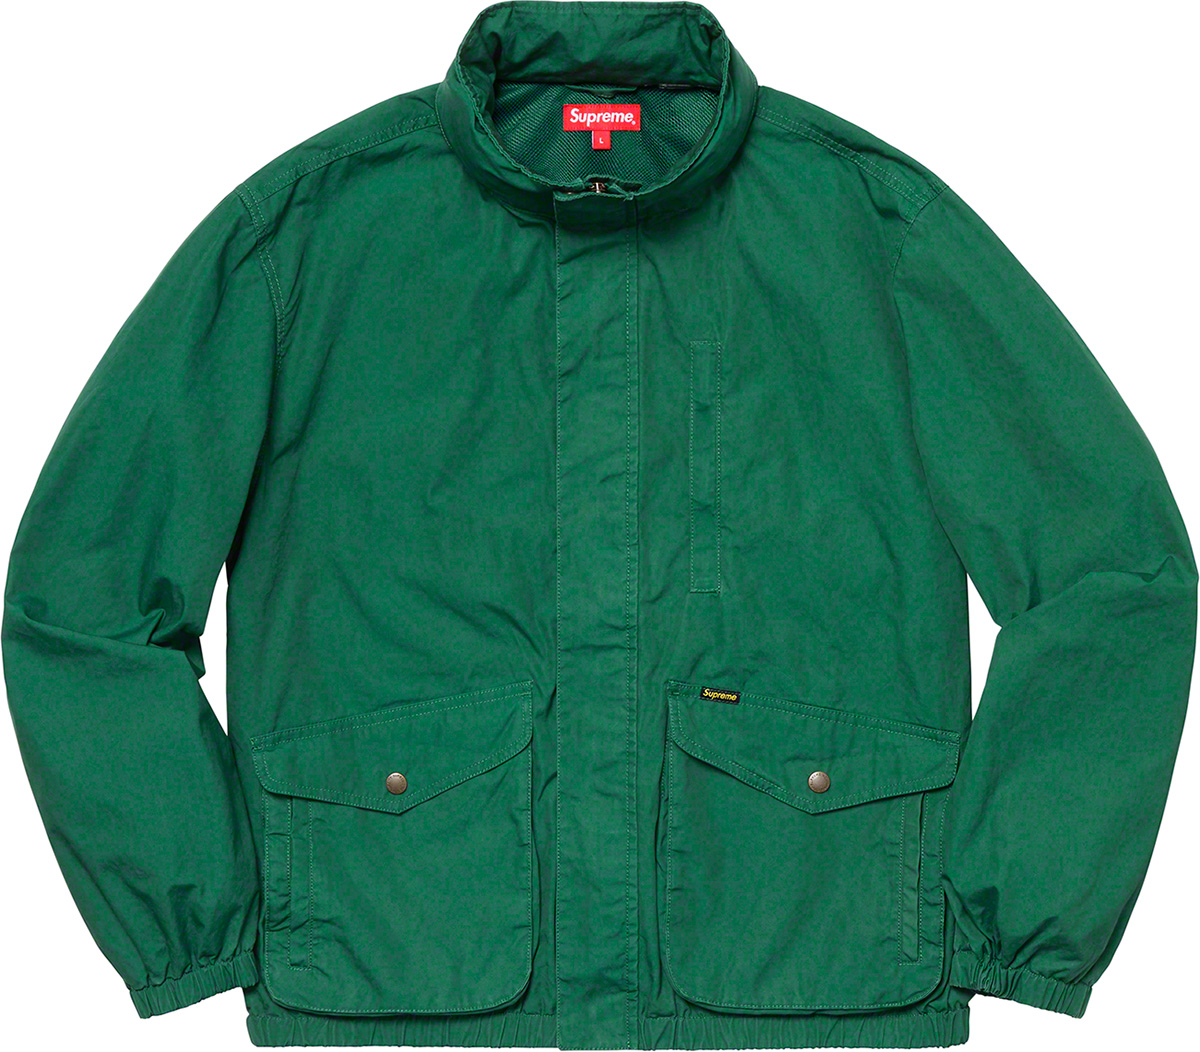 supreme-19ss-spring-summer-highland-jacket